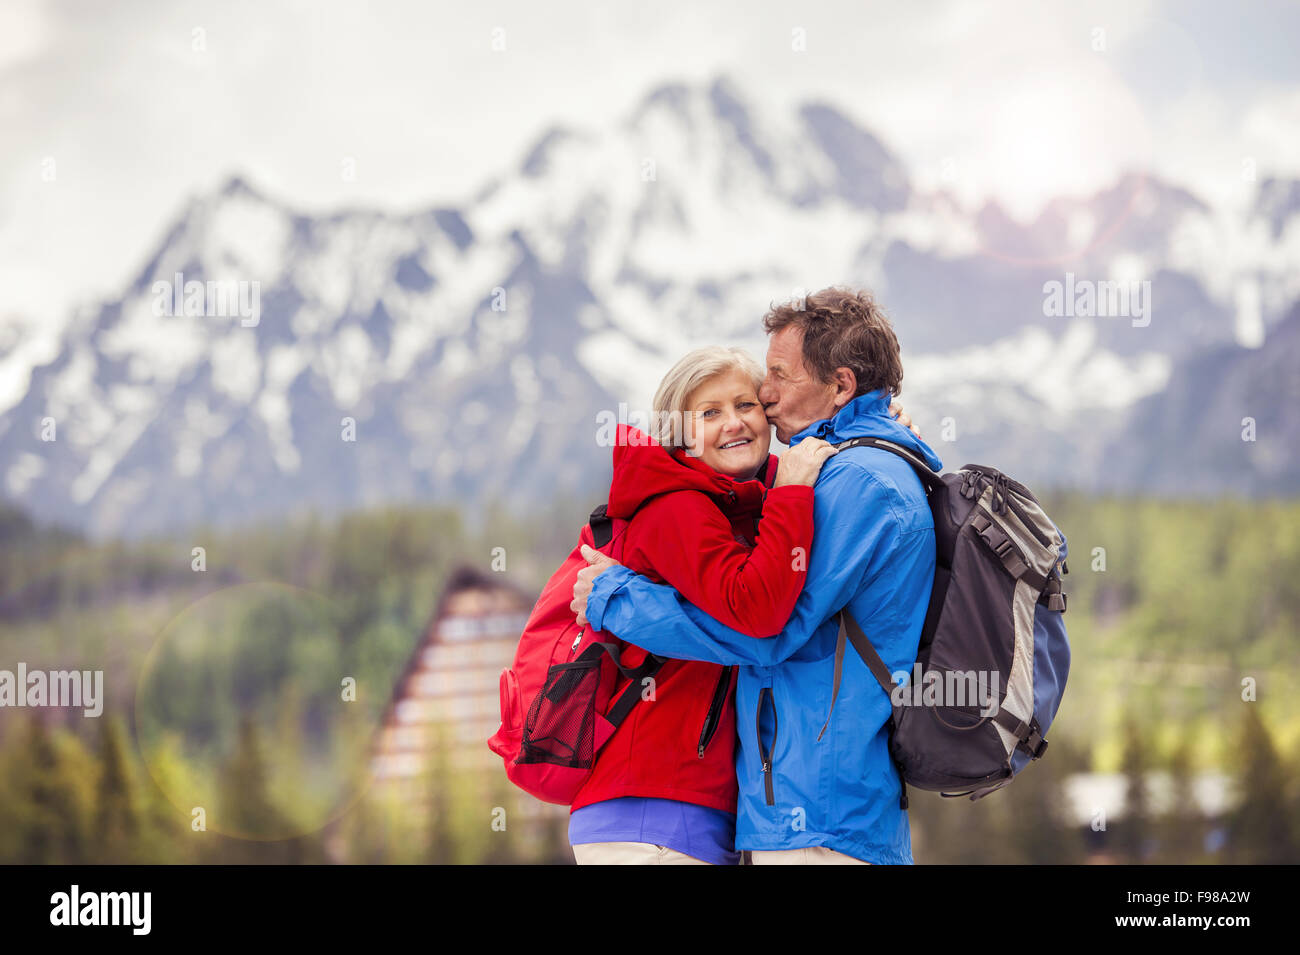 Senior hikers couple kissing during the walk in beautiful mountains, hills and hotel in background - Stock Image